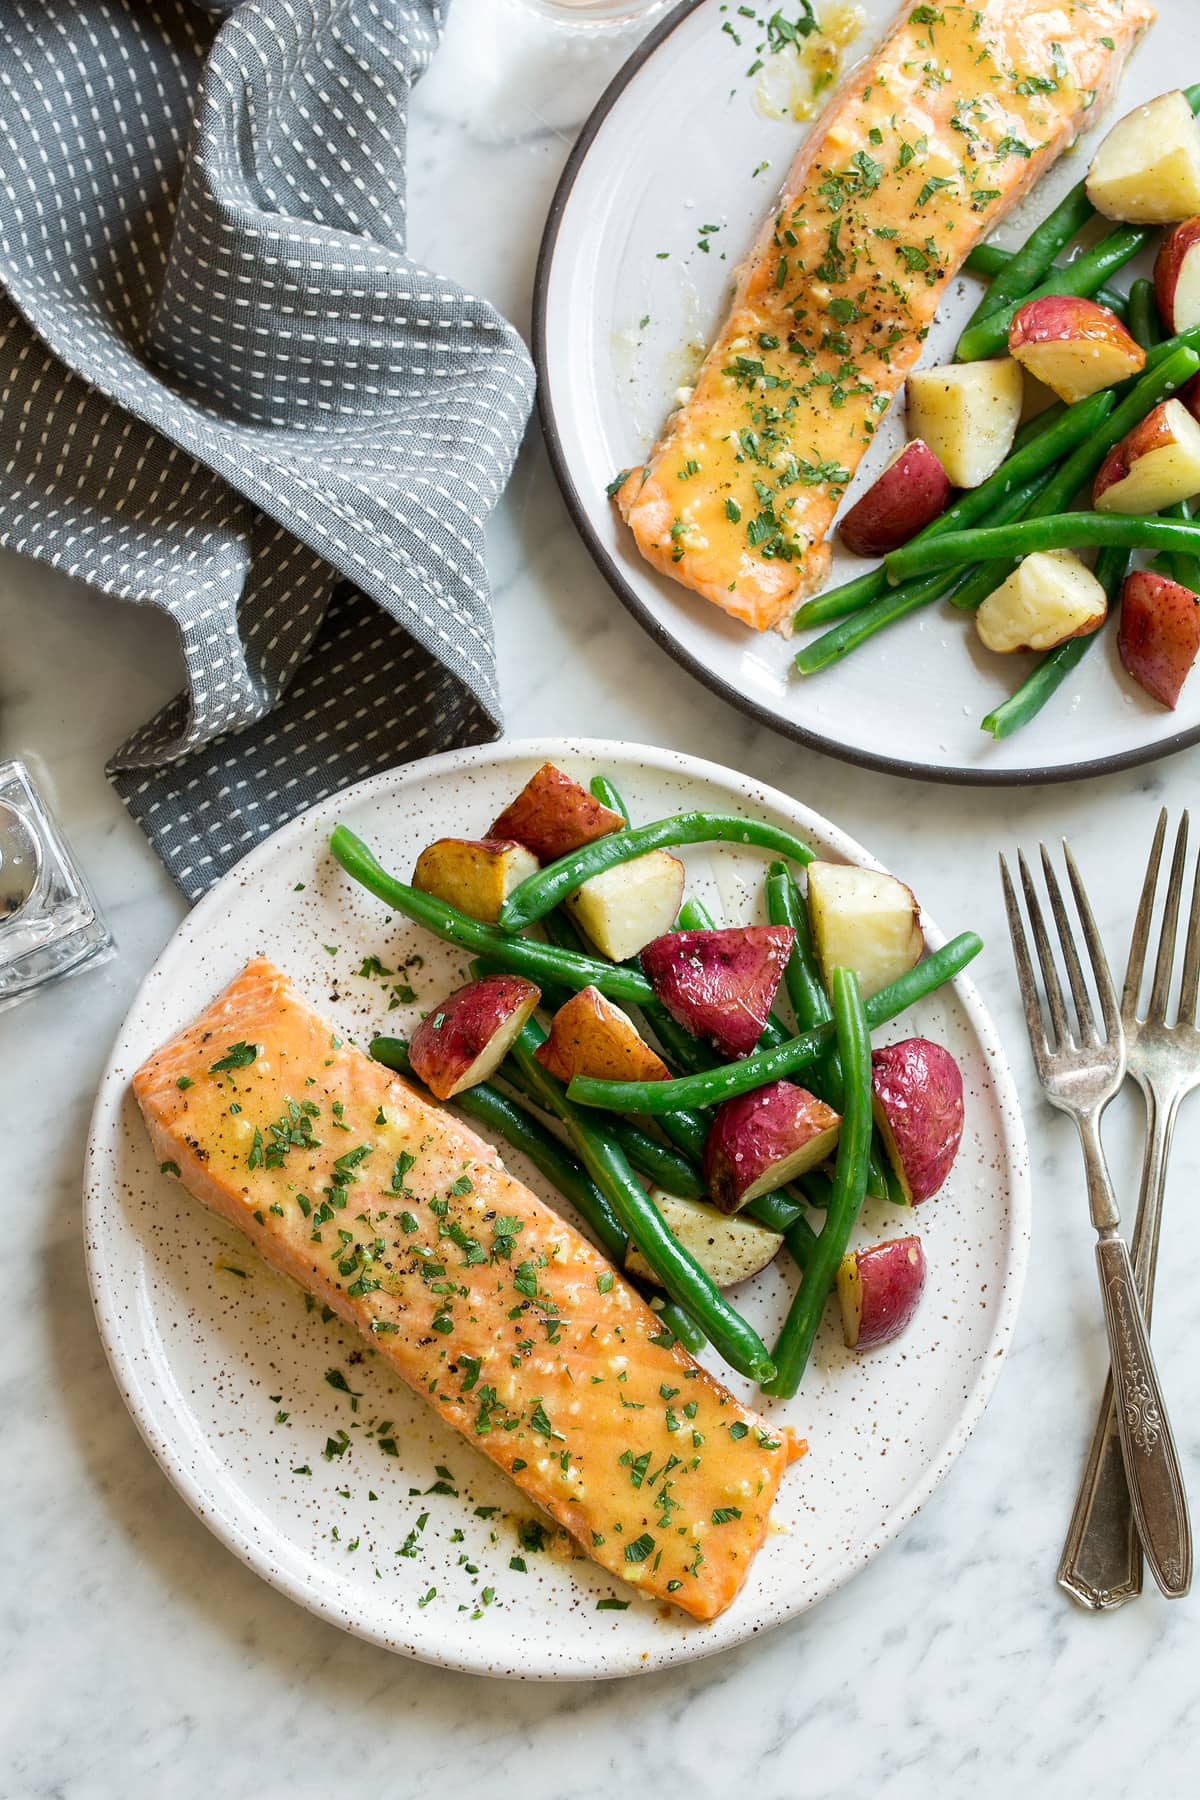 Overhead image of two servings of Baked Salmon with Buttery Honey Mustard Sauce on white serving plates set over a marble surface.